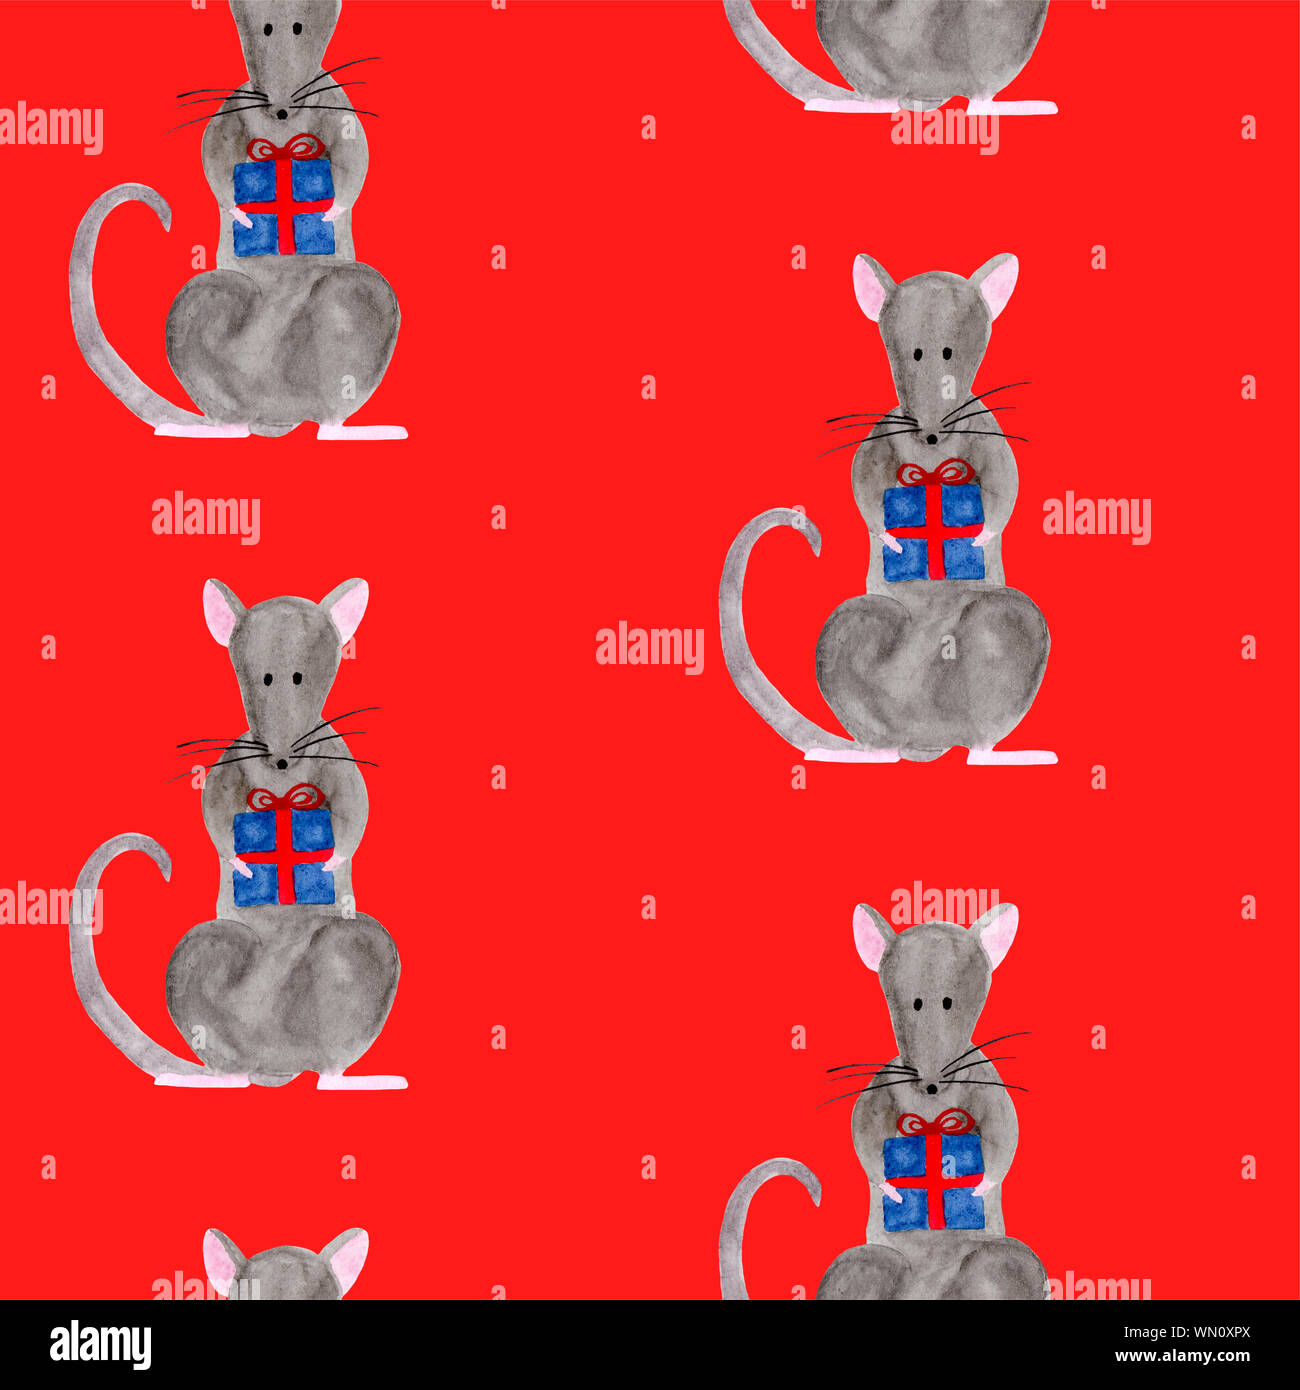 Christmas Gift Box Template.Seamless Pattern With Christmas Rat Holding Gift Box